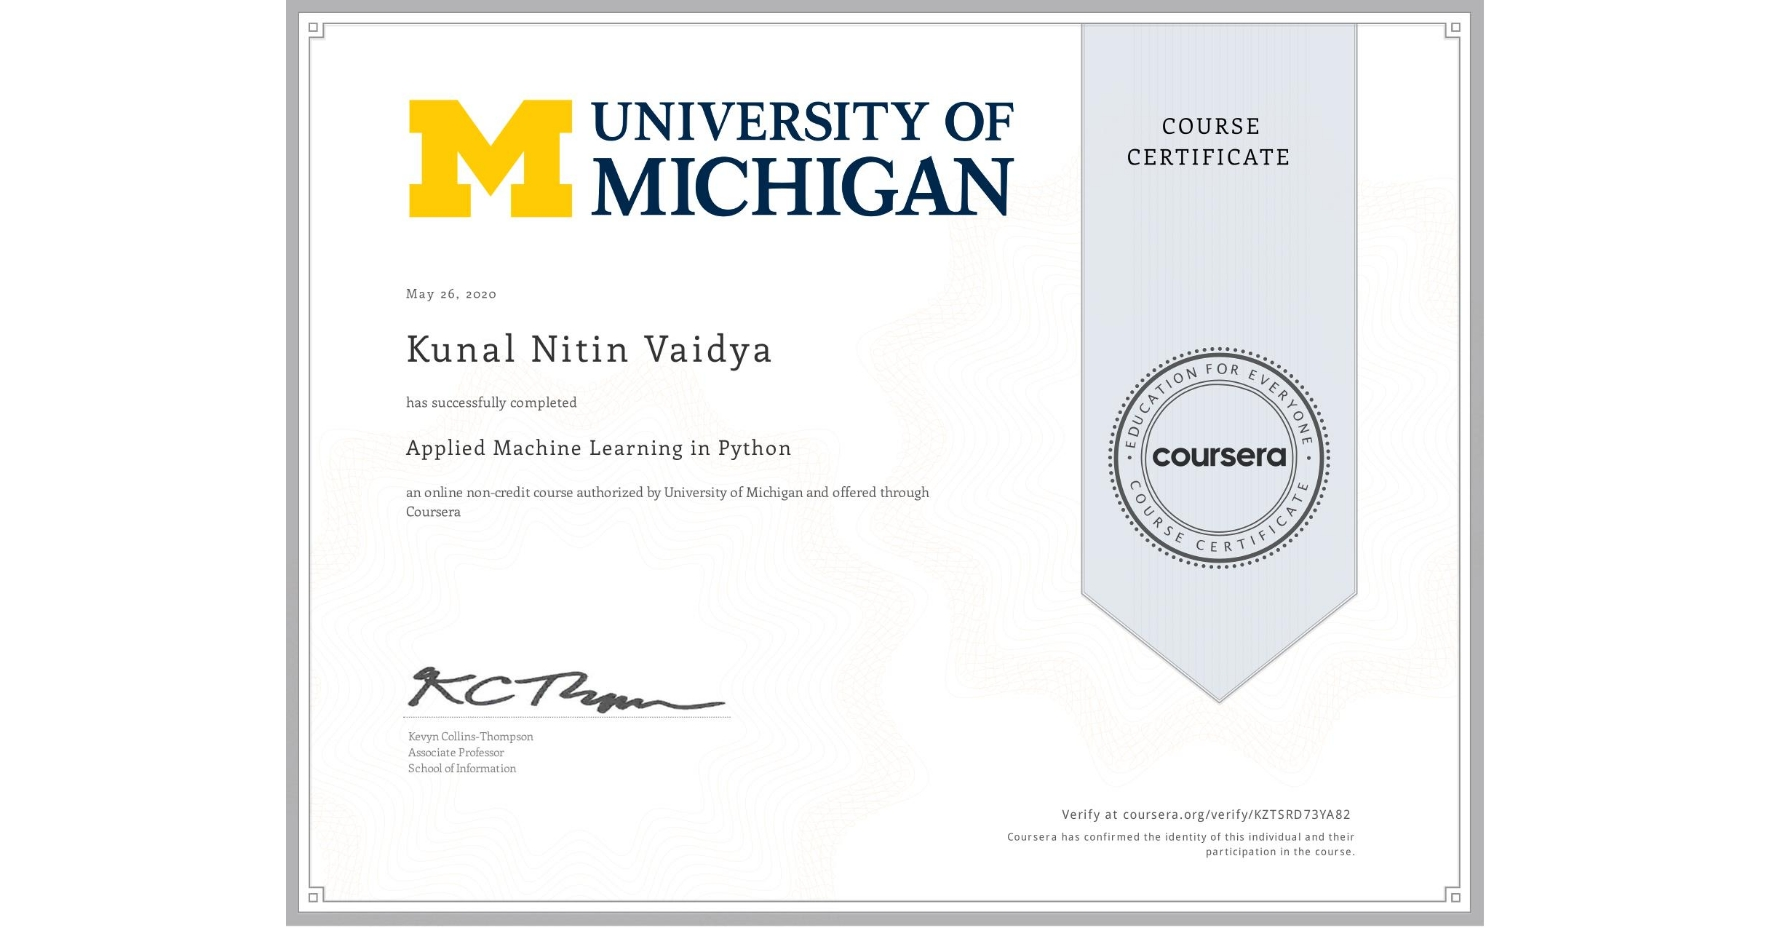 View certificate for Kunal Nitin Vaidya, Applied Machine Learning in Python, an online non-credit course authorized by University of Michigan and offered through Coursera